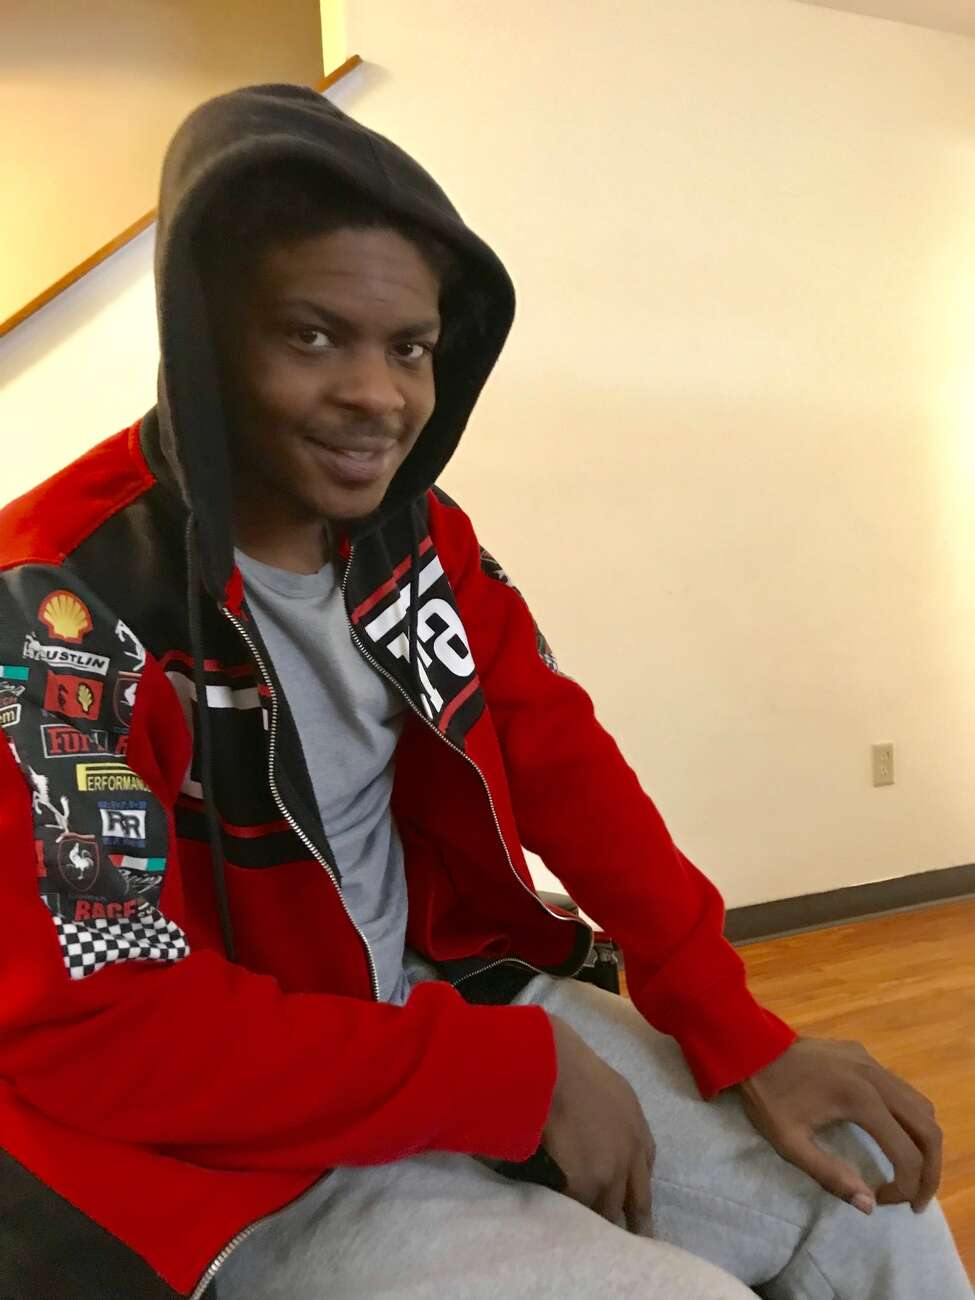 Ellazar Williams, shot by police in August and paralyzed as a result of the incident, is shown in his North Albany apartment on Jan. 27, 2019. He is using a wheelchair more regularly now and moved to a ground-level apartment so he can go outside. He insisted on wearing a hoodie over his head because he said he was having a bad hair day and his hair was not neatly braided. (Paul Grondahl/Times Union)